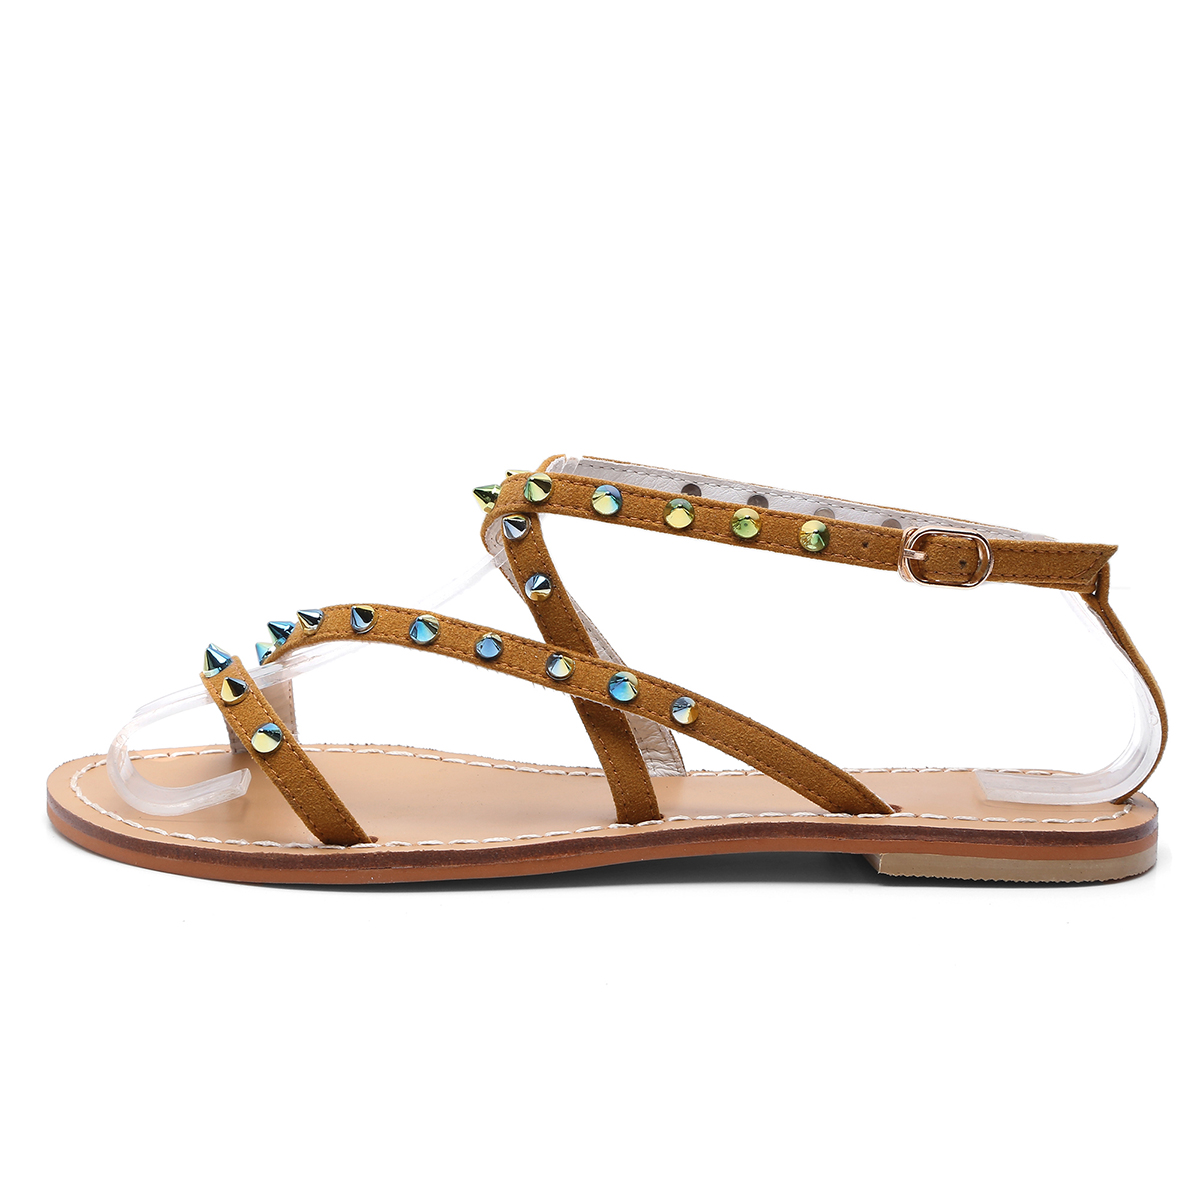 9261b4e90 US  35 - Arden Furtado 2018 summer flats genuine leather buckle strap  fashion casual sandals flat rivets gladiator shoes for woman lady -  www.ardenfurtado. ...